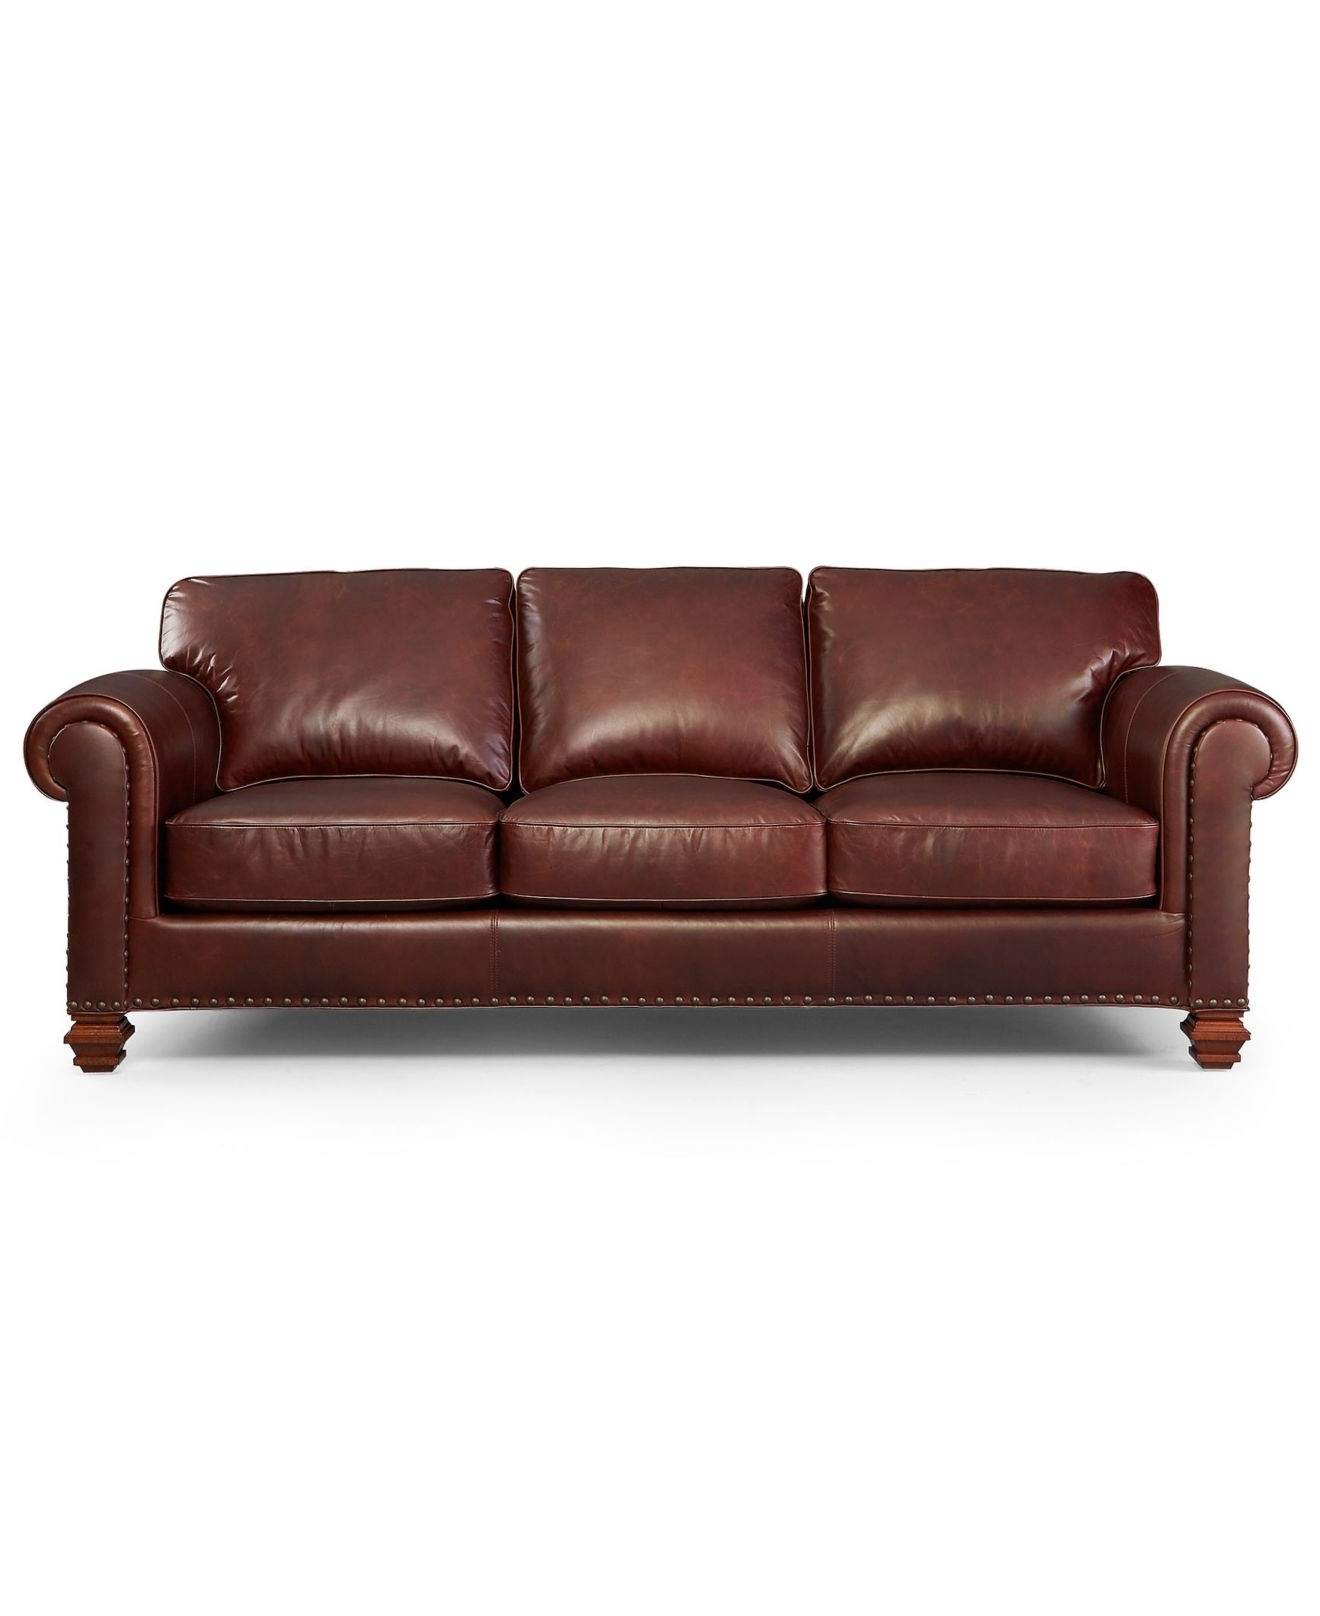 Lauren Ralph Lauren Leather Sofa, Stanmore – Living Room Furniture Throughout Widely Used Macys Leather Sofas (View 12 of 15)